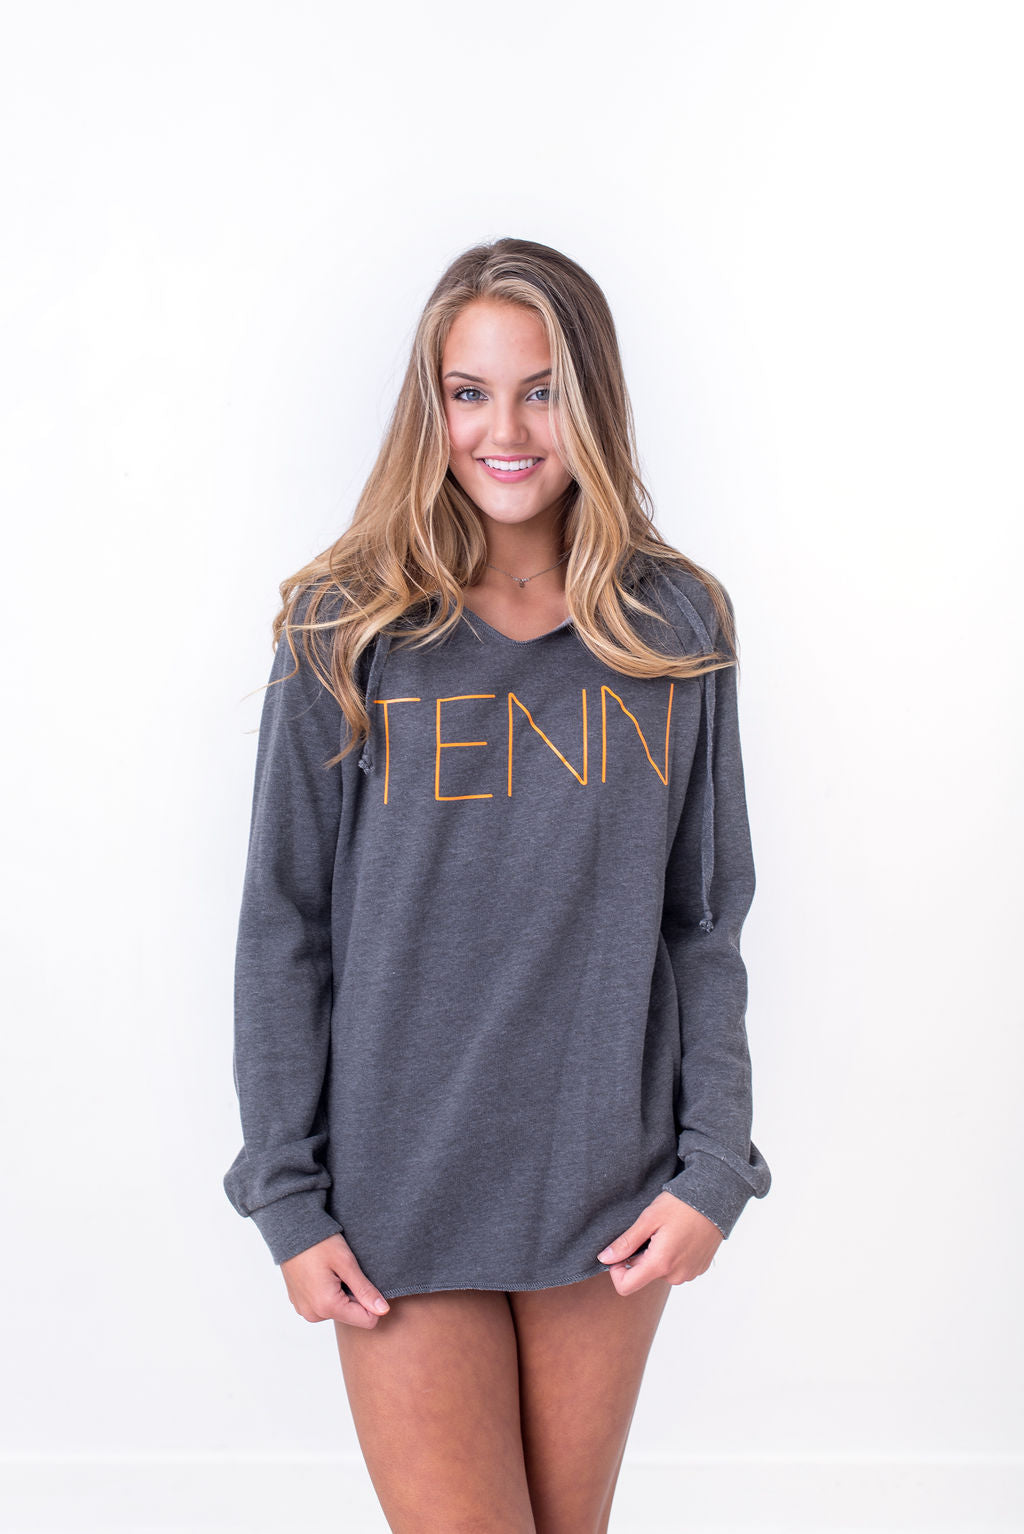 TENN Sweatshirt